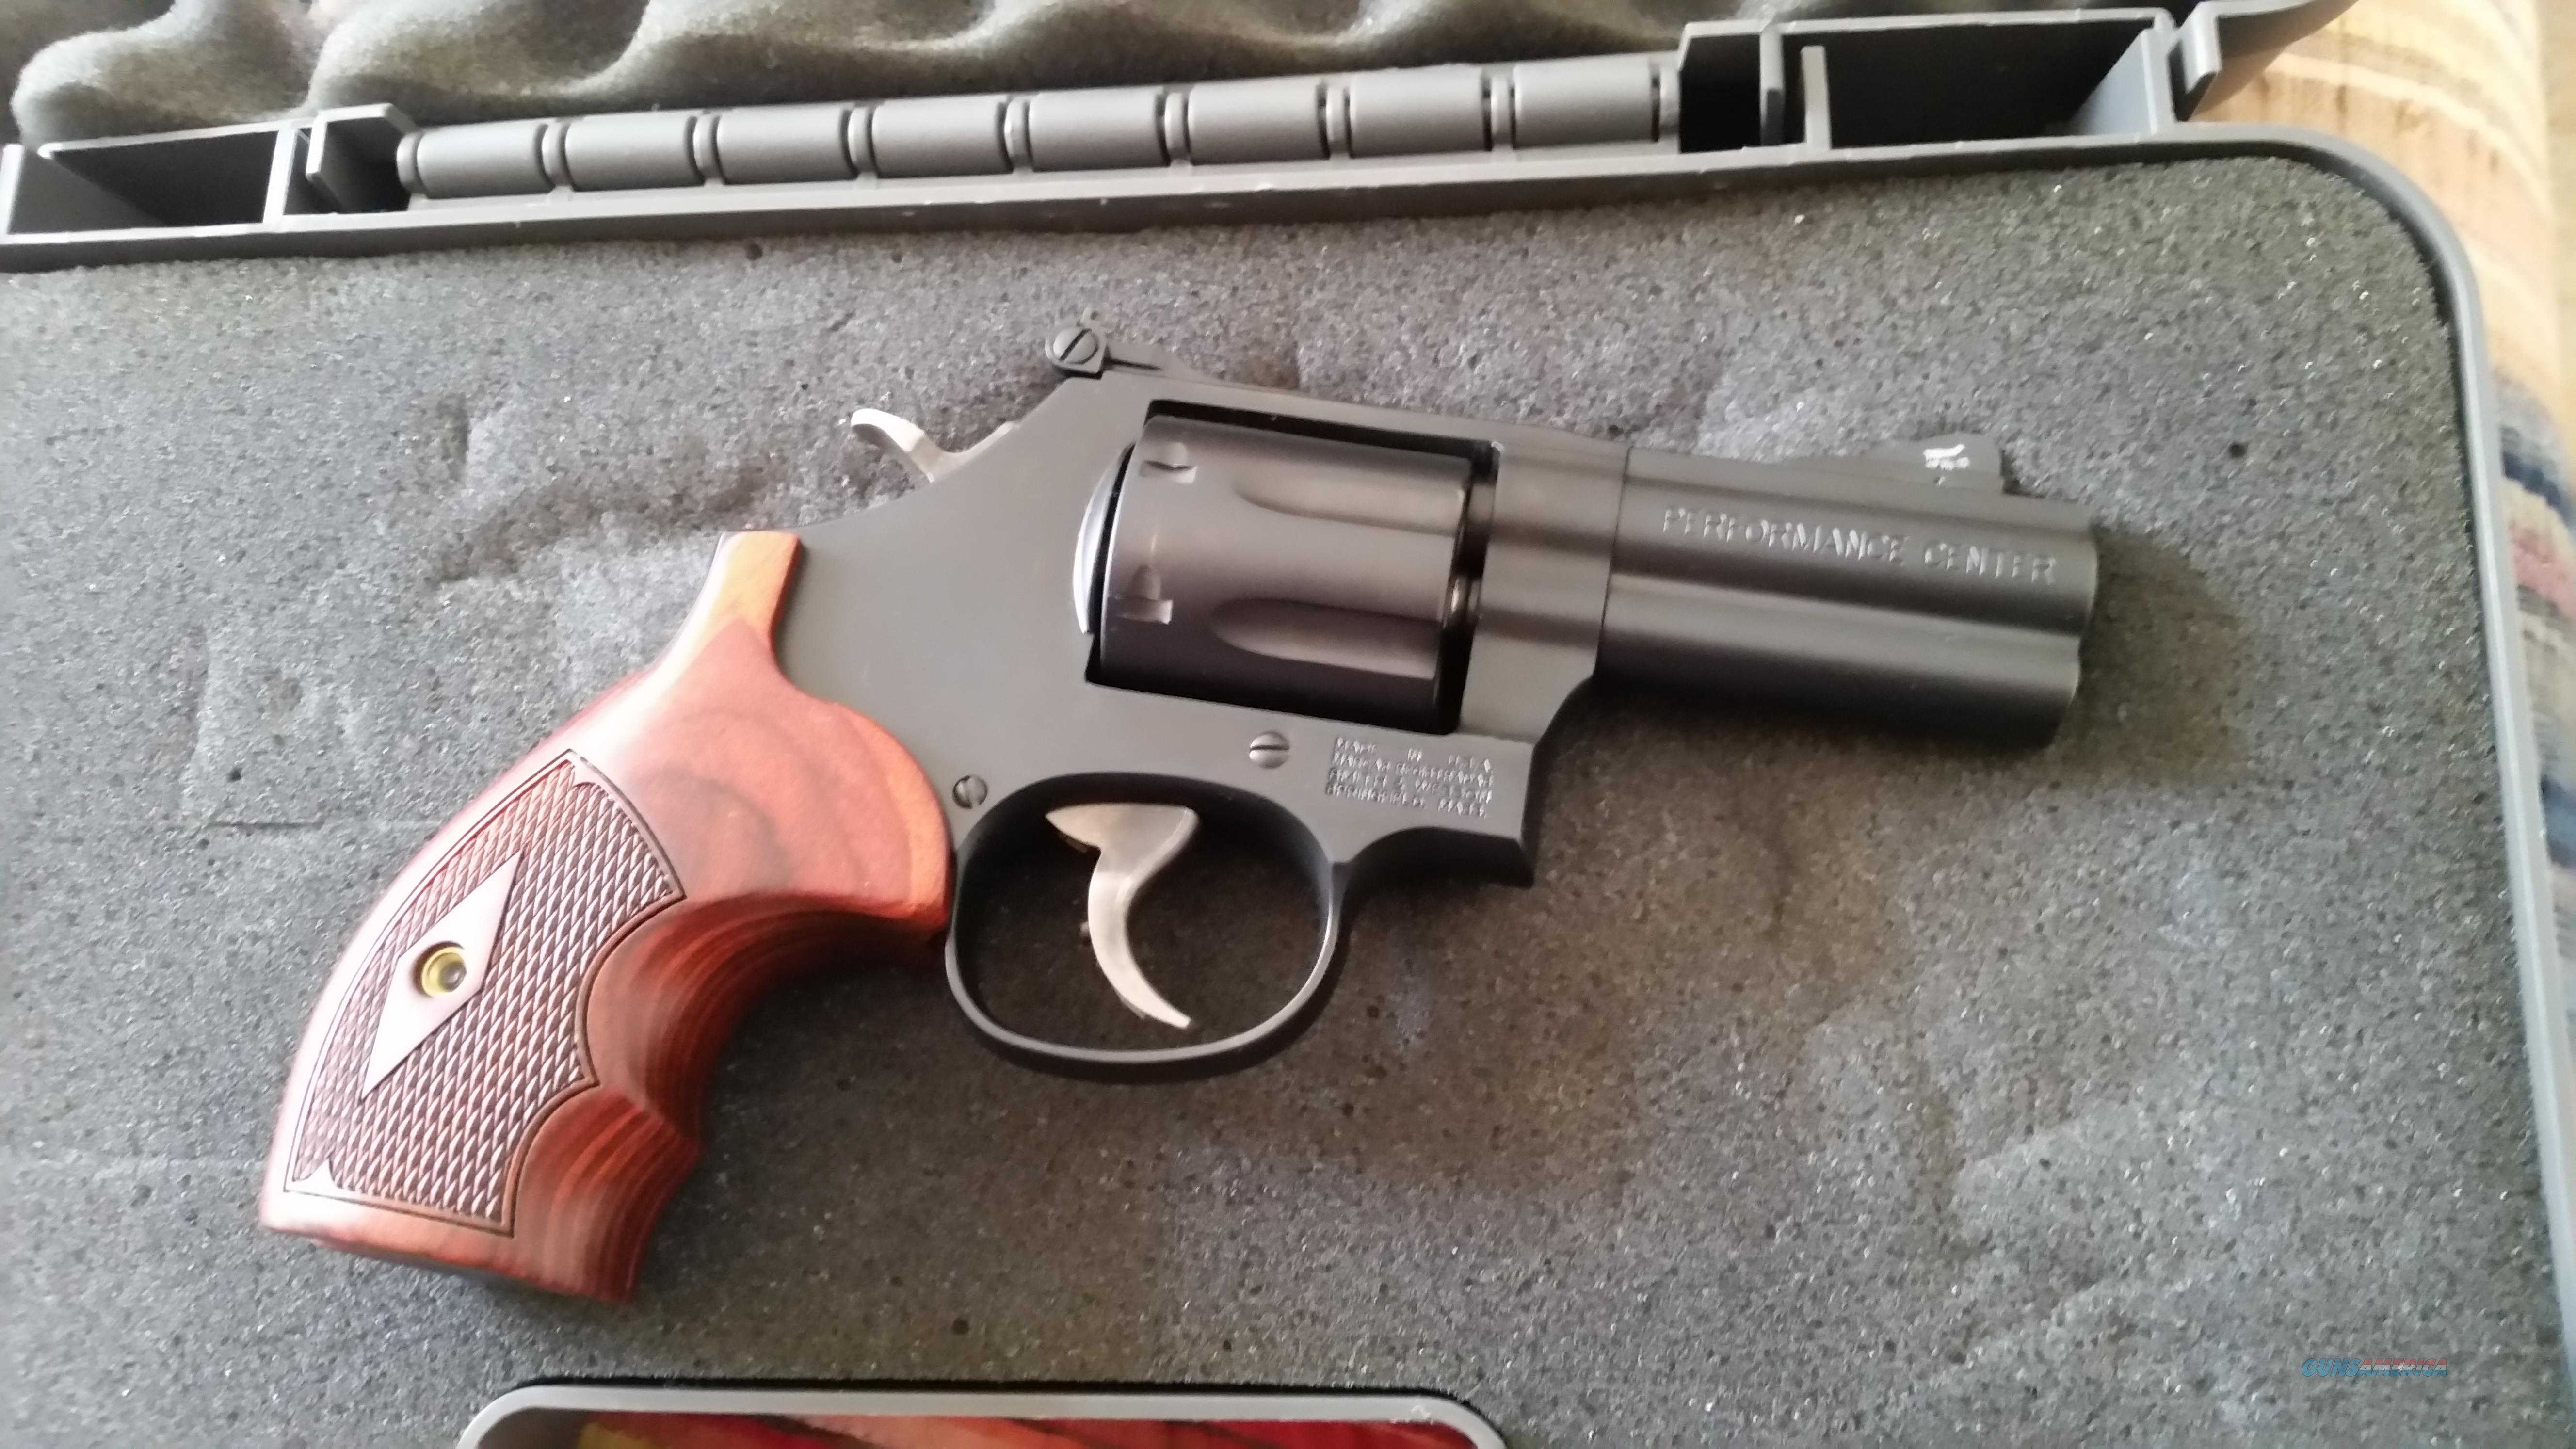 New Smith and Wesson 586 L-Comp Performance Center 357 Magnum NIB  FREE SHIPPING!!  Guns > Pistols > Smith & Wesson Revolvers > Performance Center